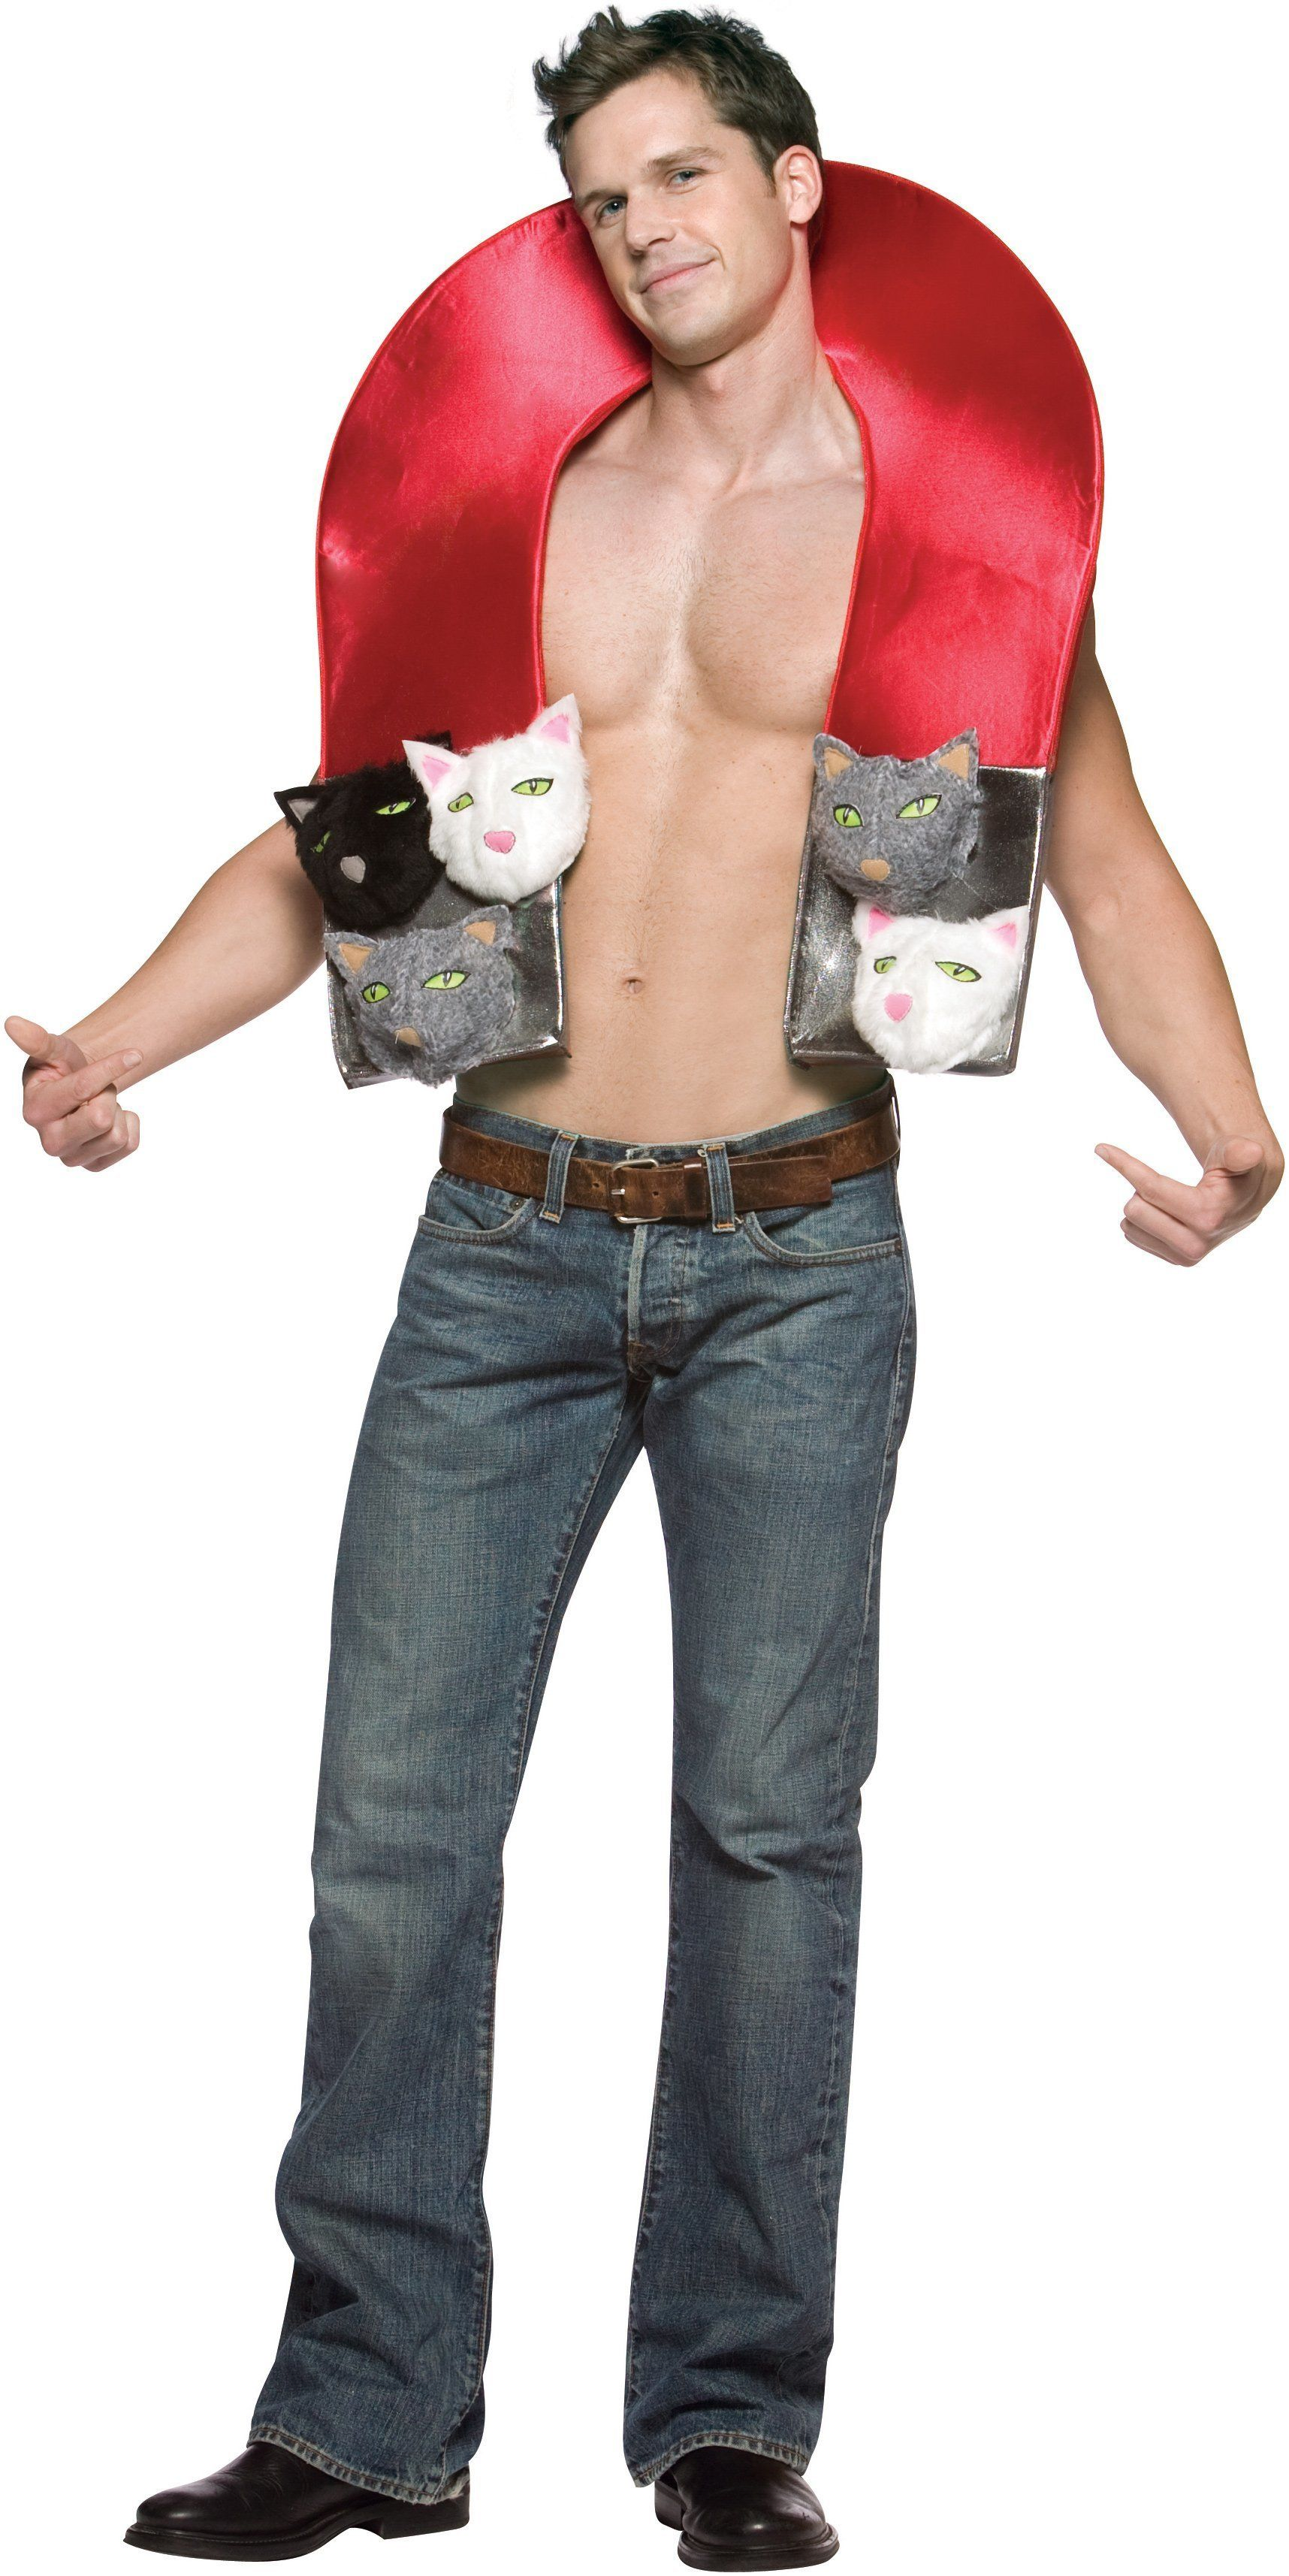 Outrageous halloween costume